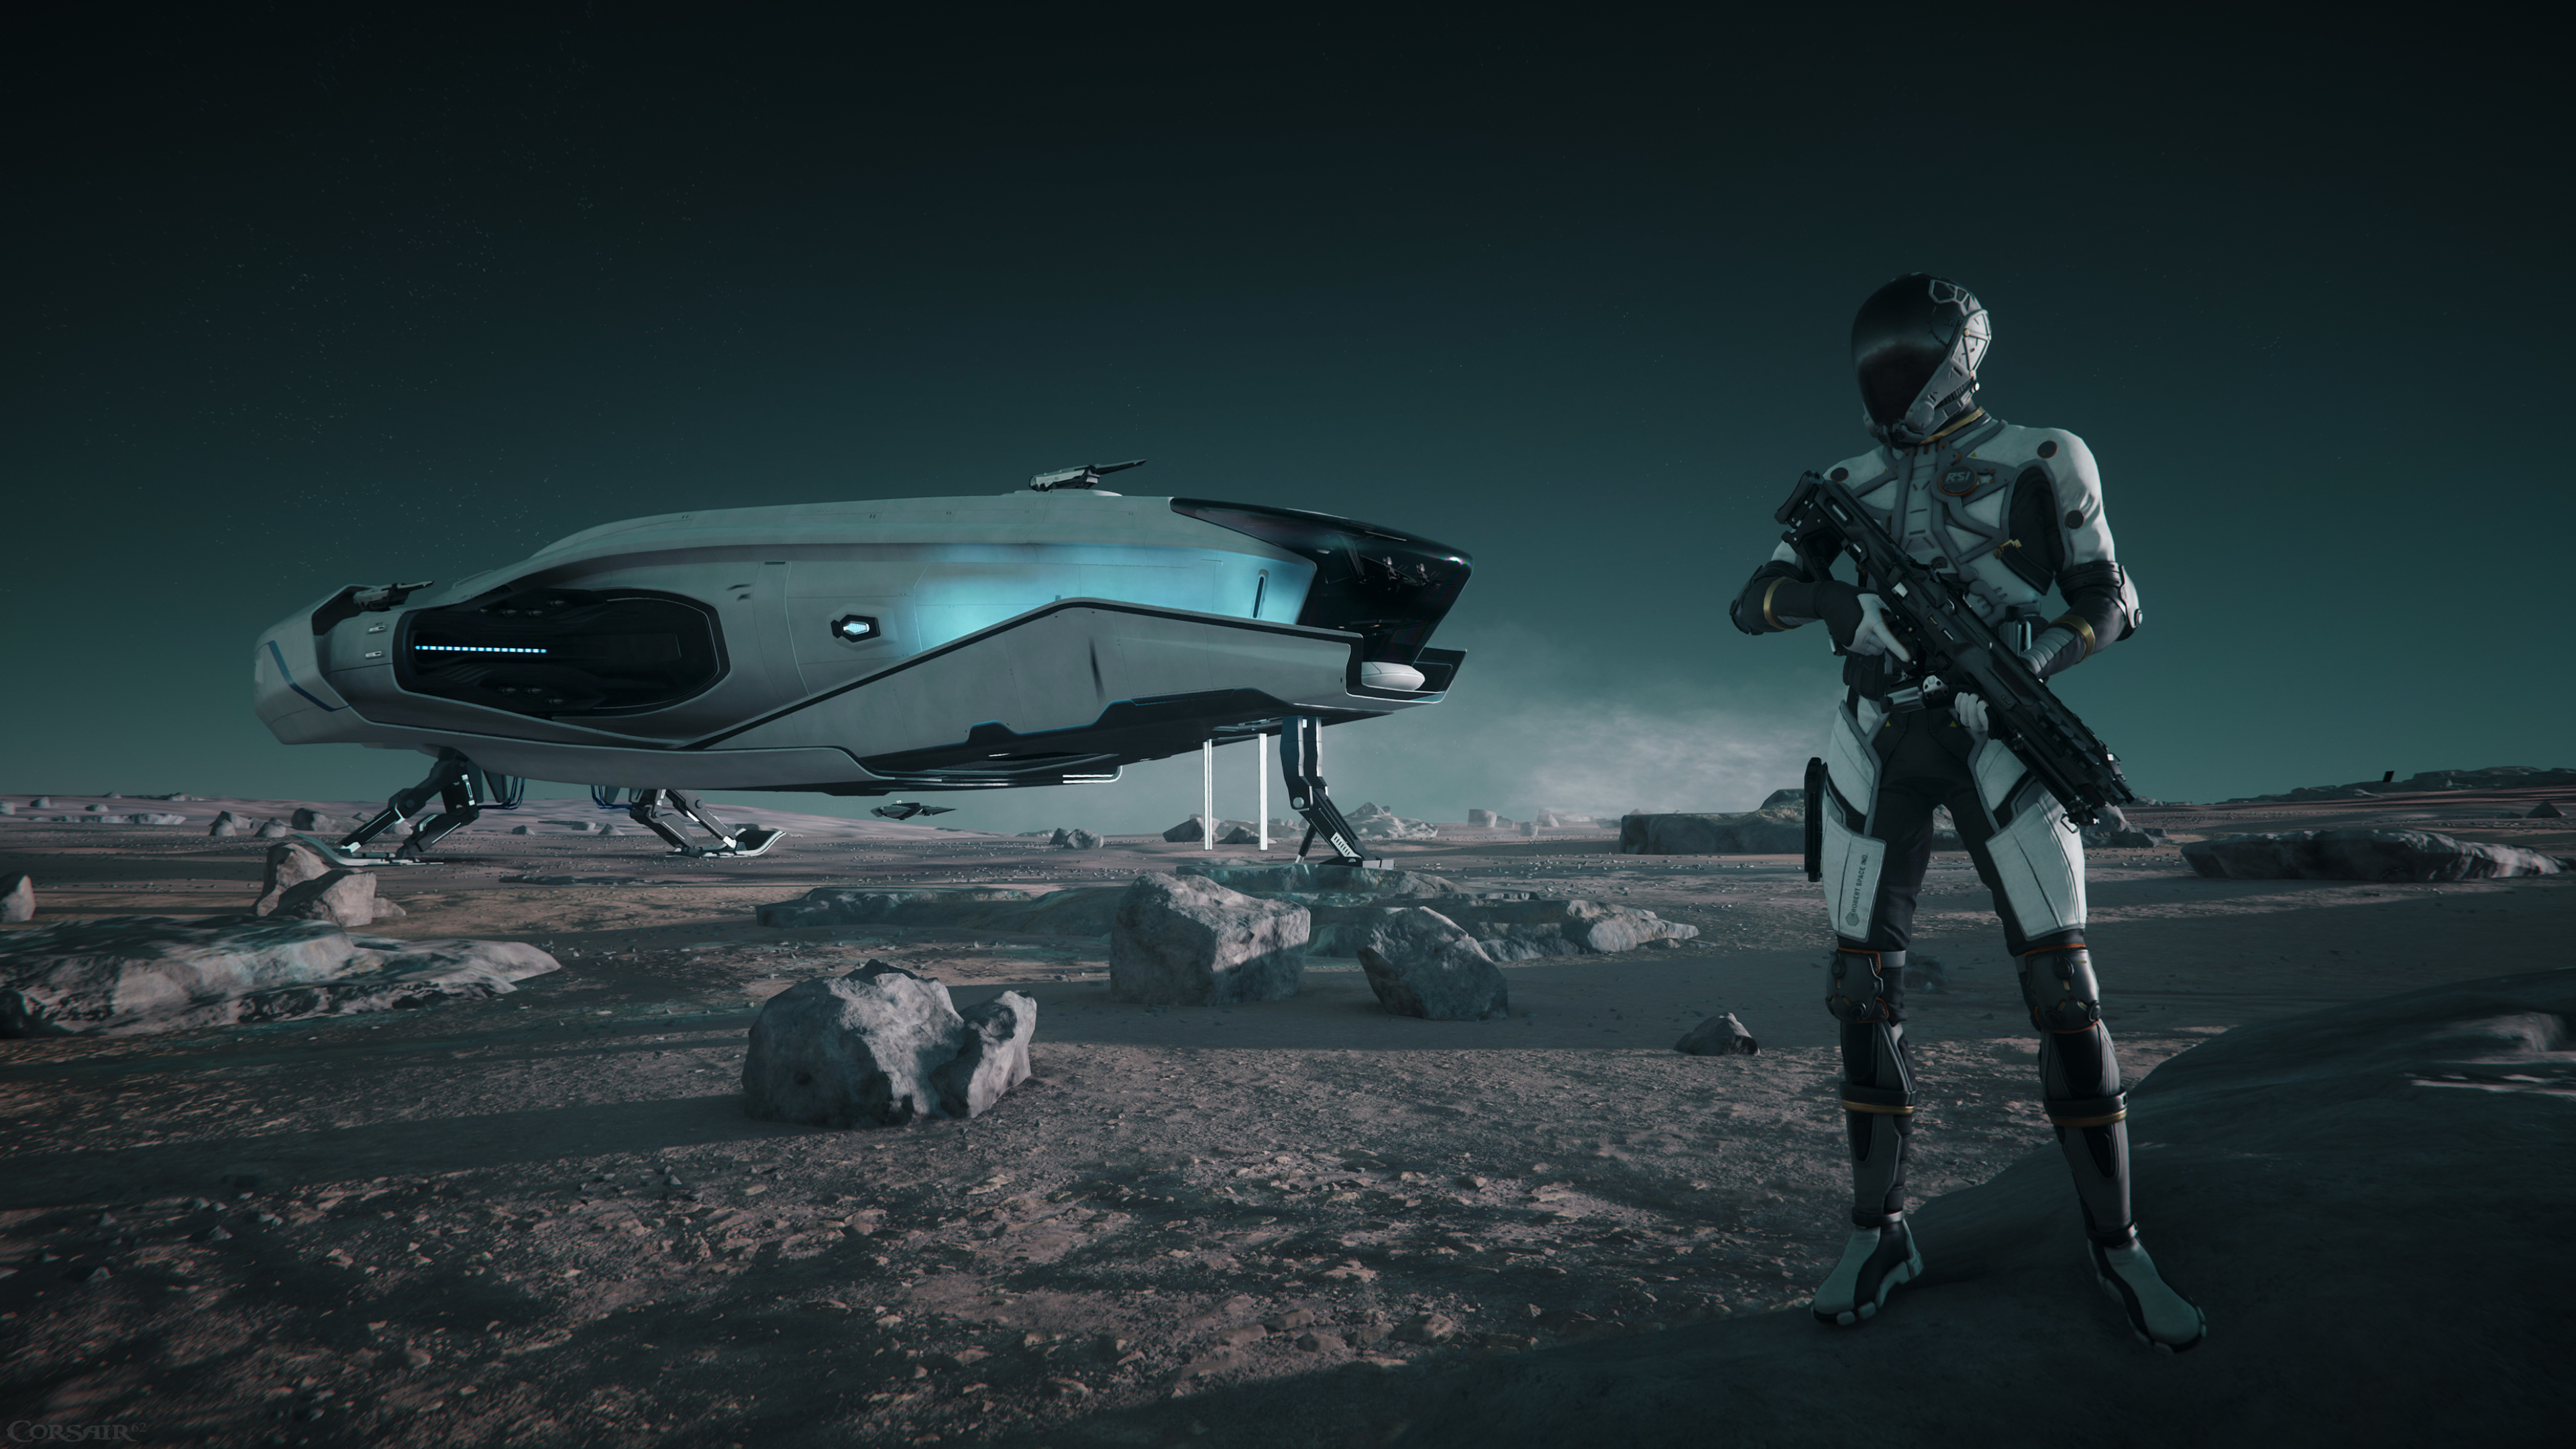 Wallpaper 4k Star Citizen Cgi 4k 2019 Games Wallpapers 4k Wallpapers Games Wallpapers Hd Wallpapers Pc Games Wallpapers Spaceship Wallpapers Star Citizen Wallpapers